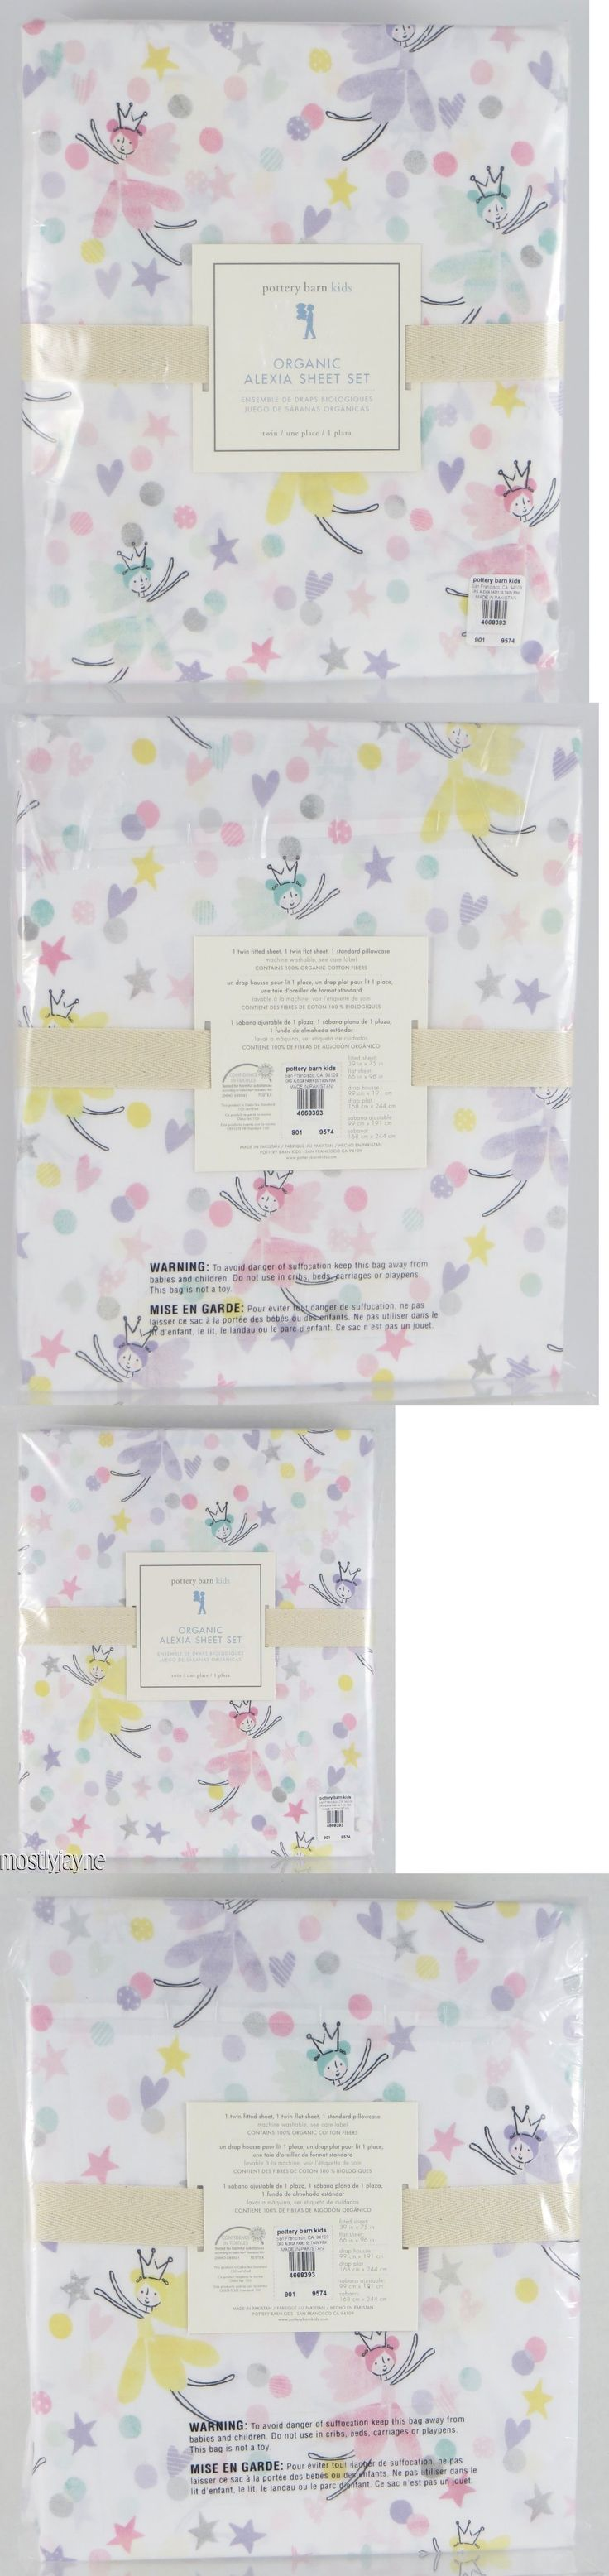 Kids Bedding: Pottery Barn Kids - Alexia Fairy Twin Sheet Set - Princess Nwt -> BUY IT NOW ONLY: $79.99 on eBay!